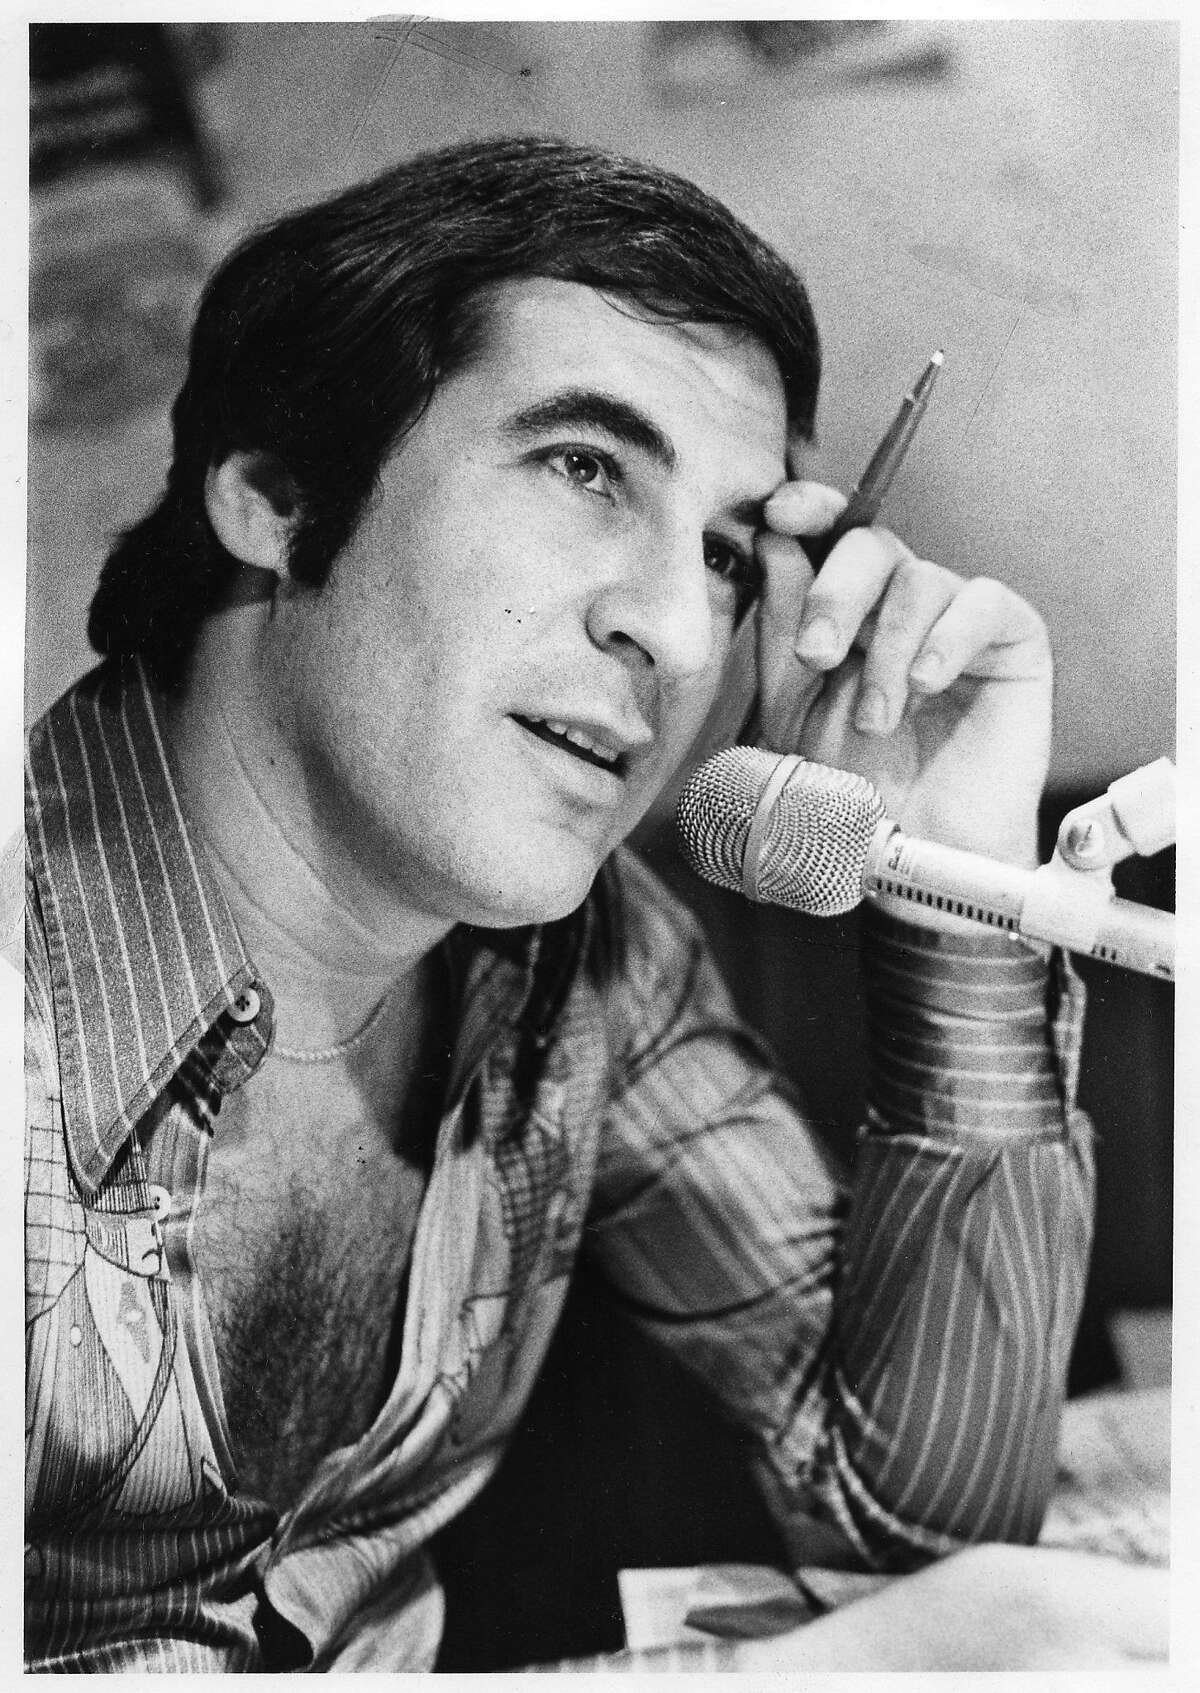 Ronn Owens in a 1976 photo provided by KGO, shortly after he joined the station.